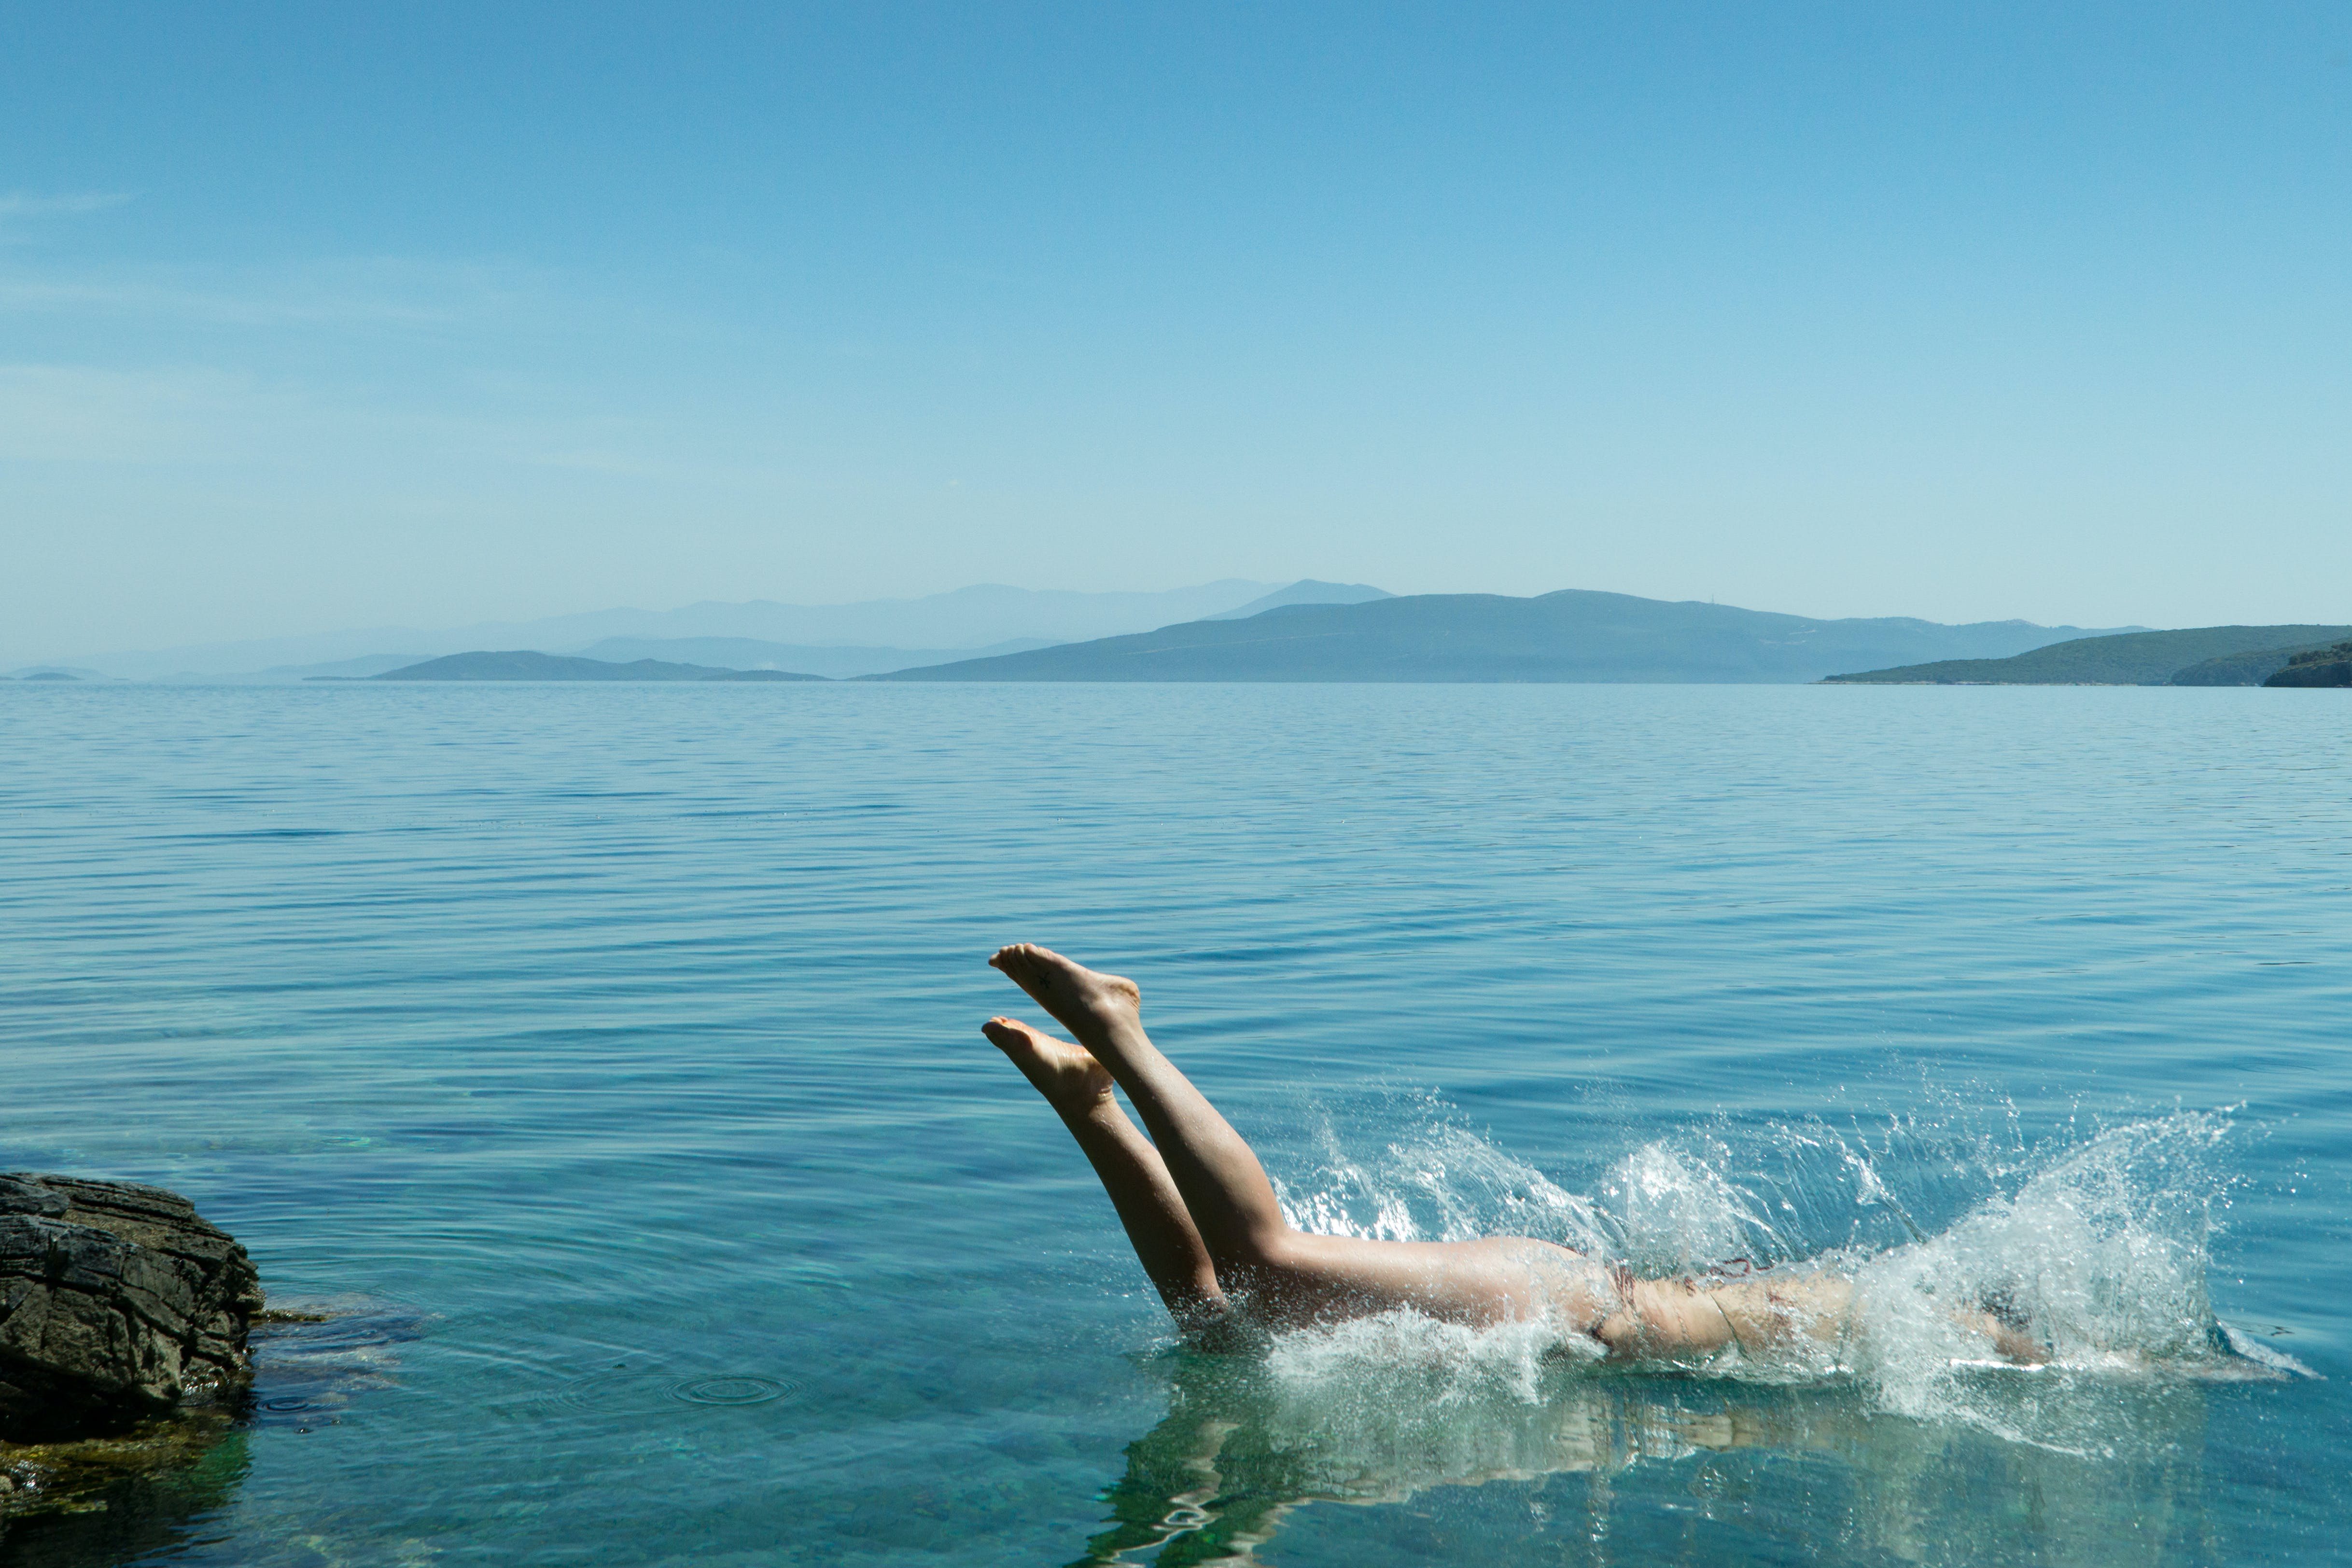 Person Diving on Body of Water during Daytime